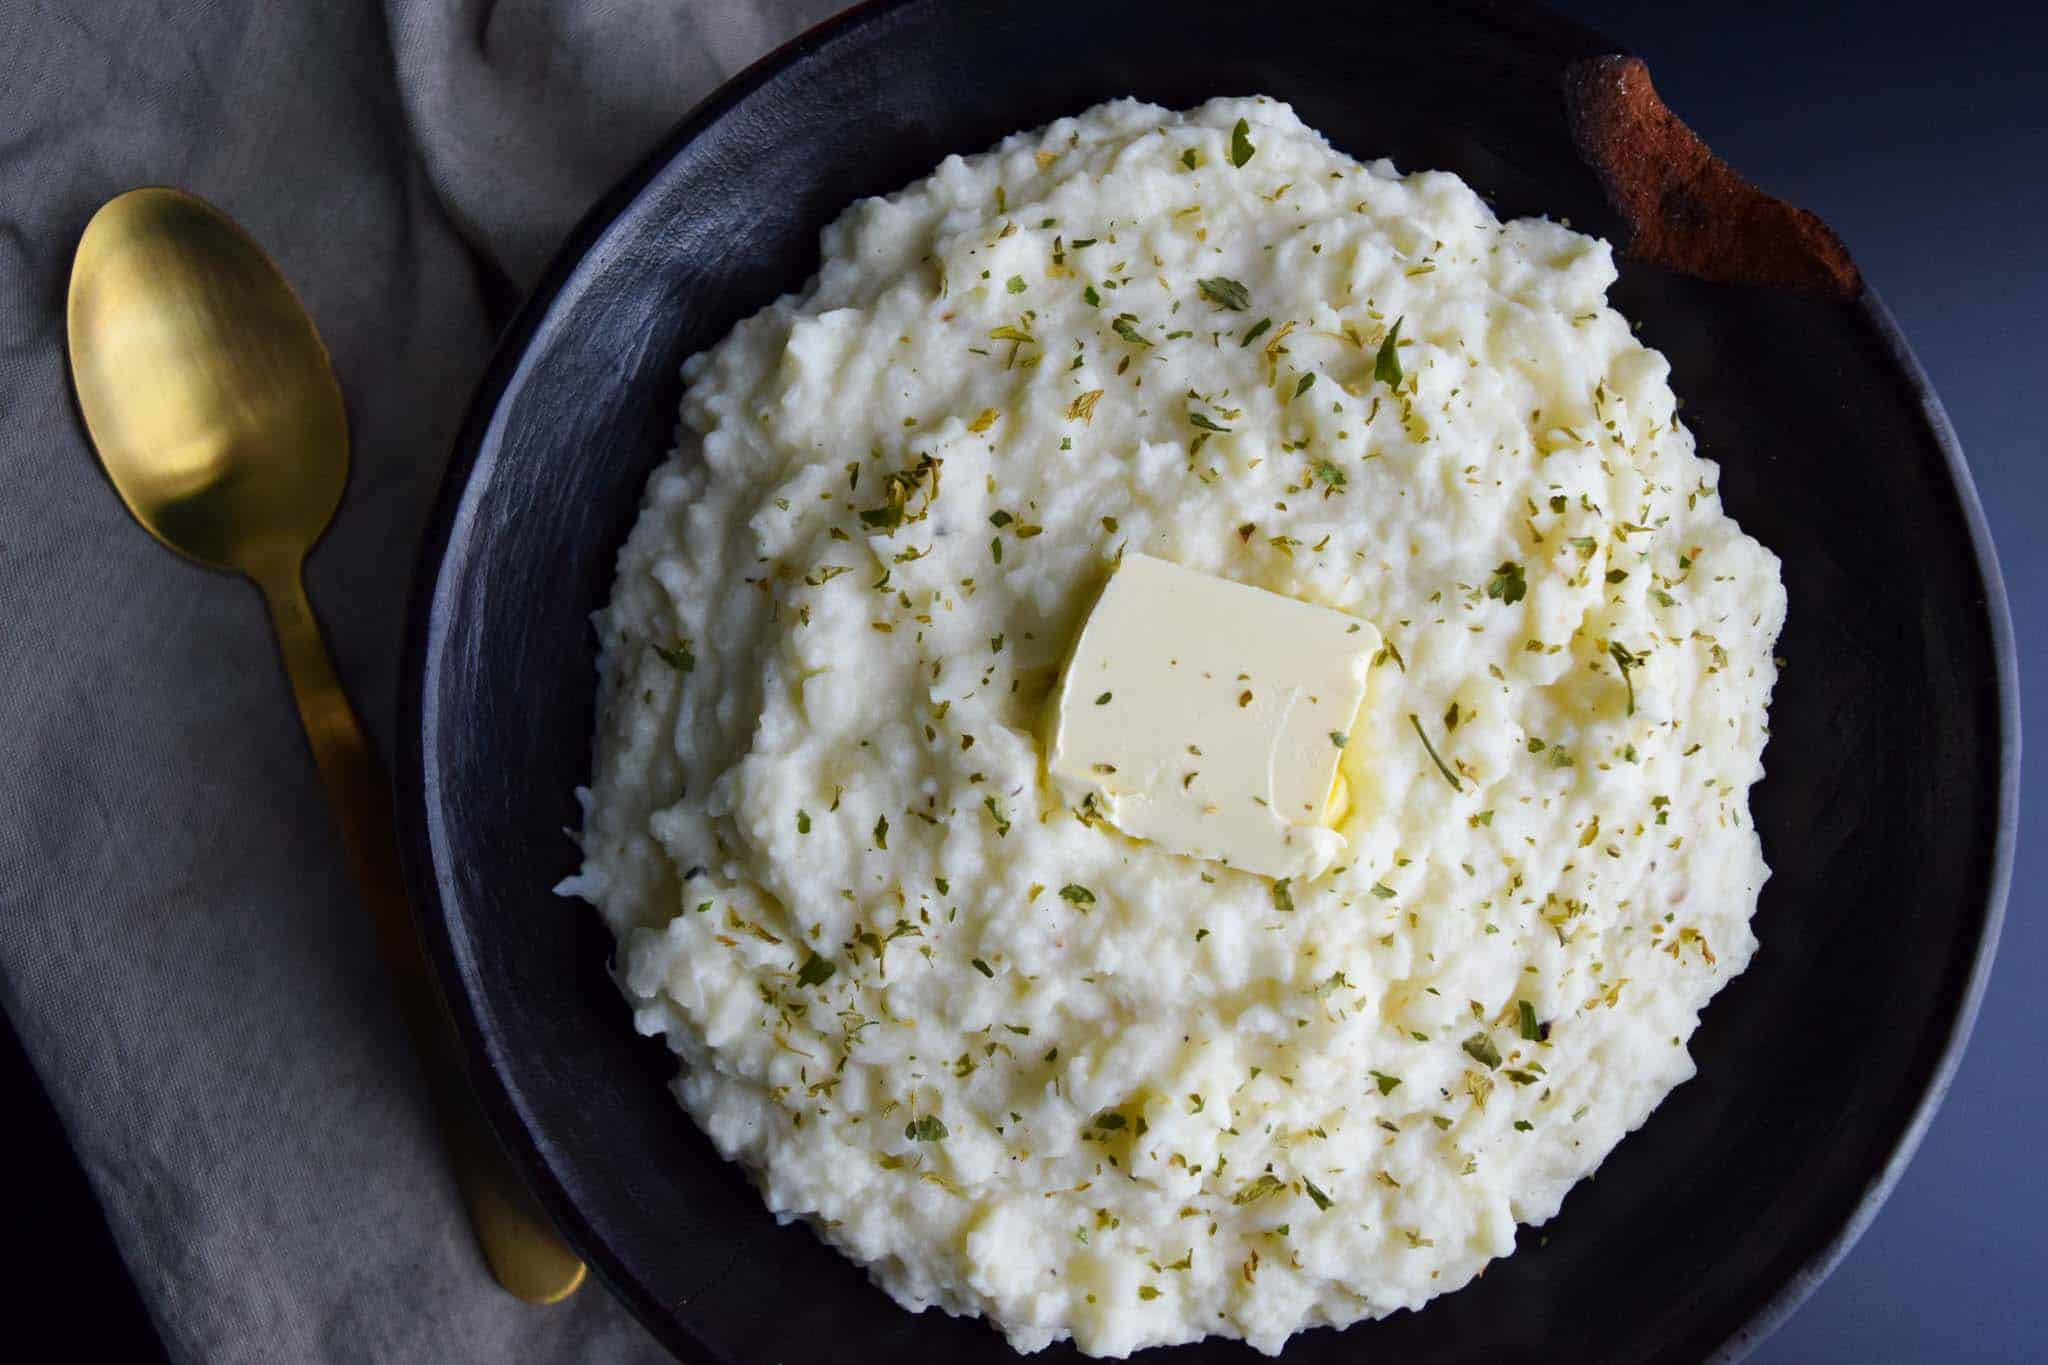 Mashed Cauli-Potatoes